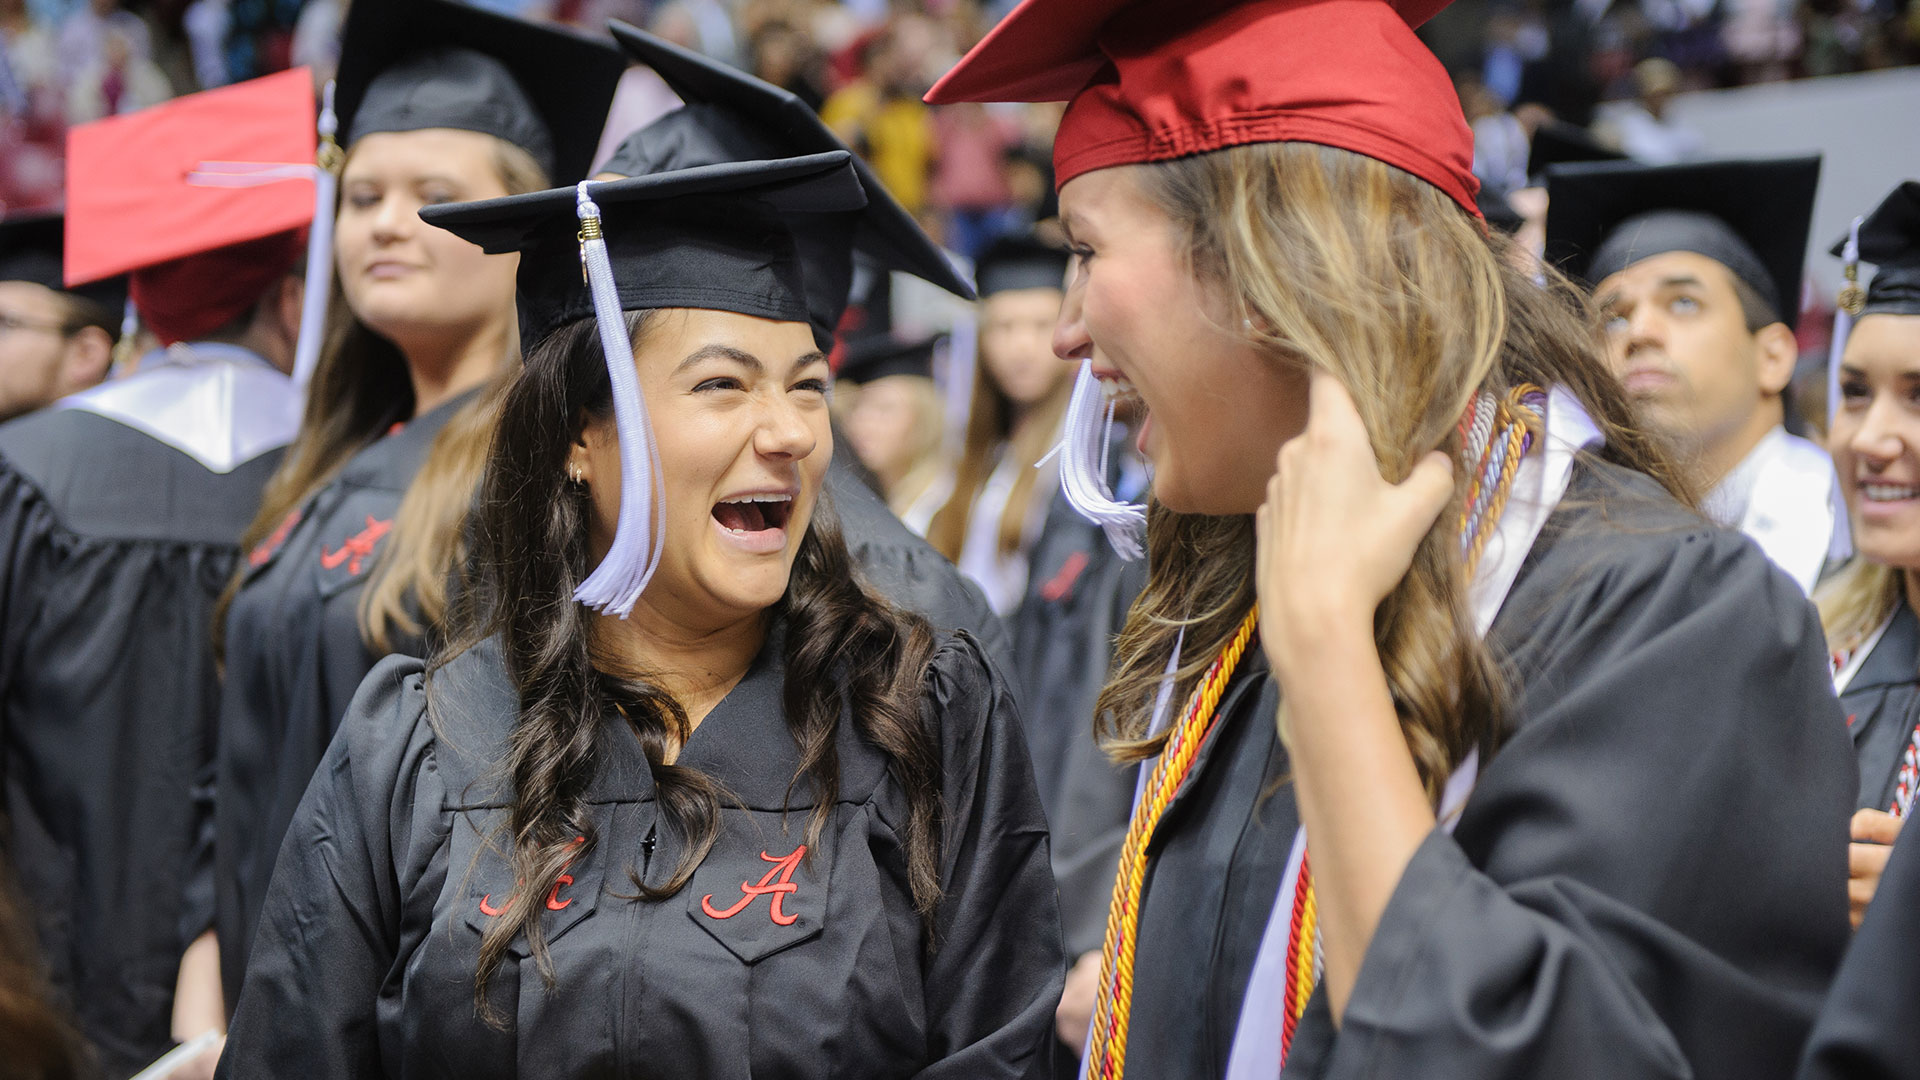 Two excited graduates having fun at commencement.